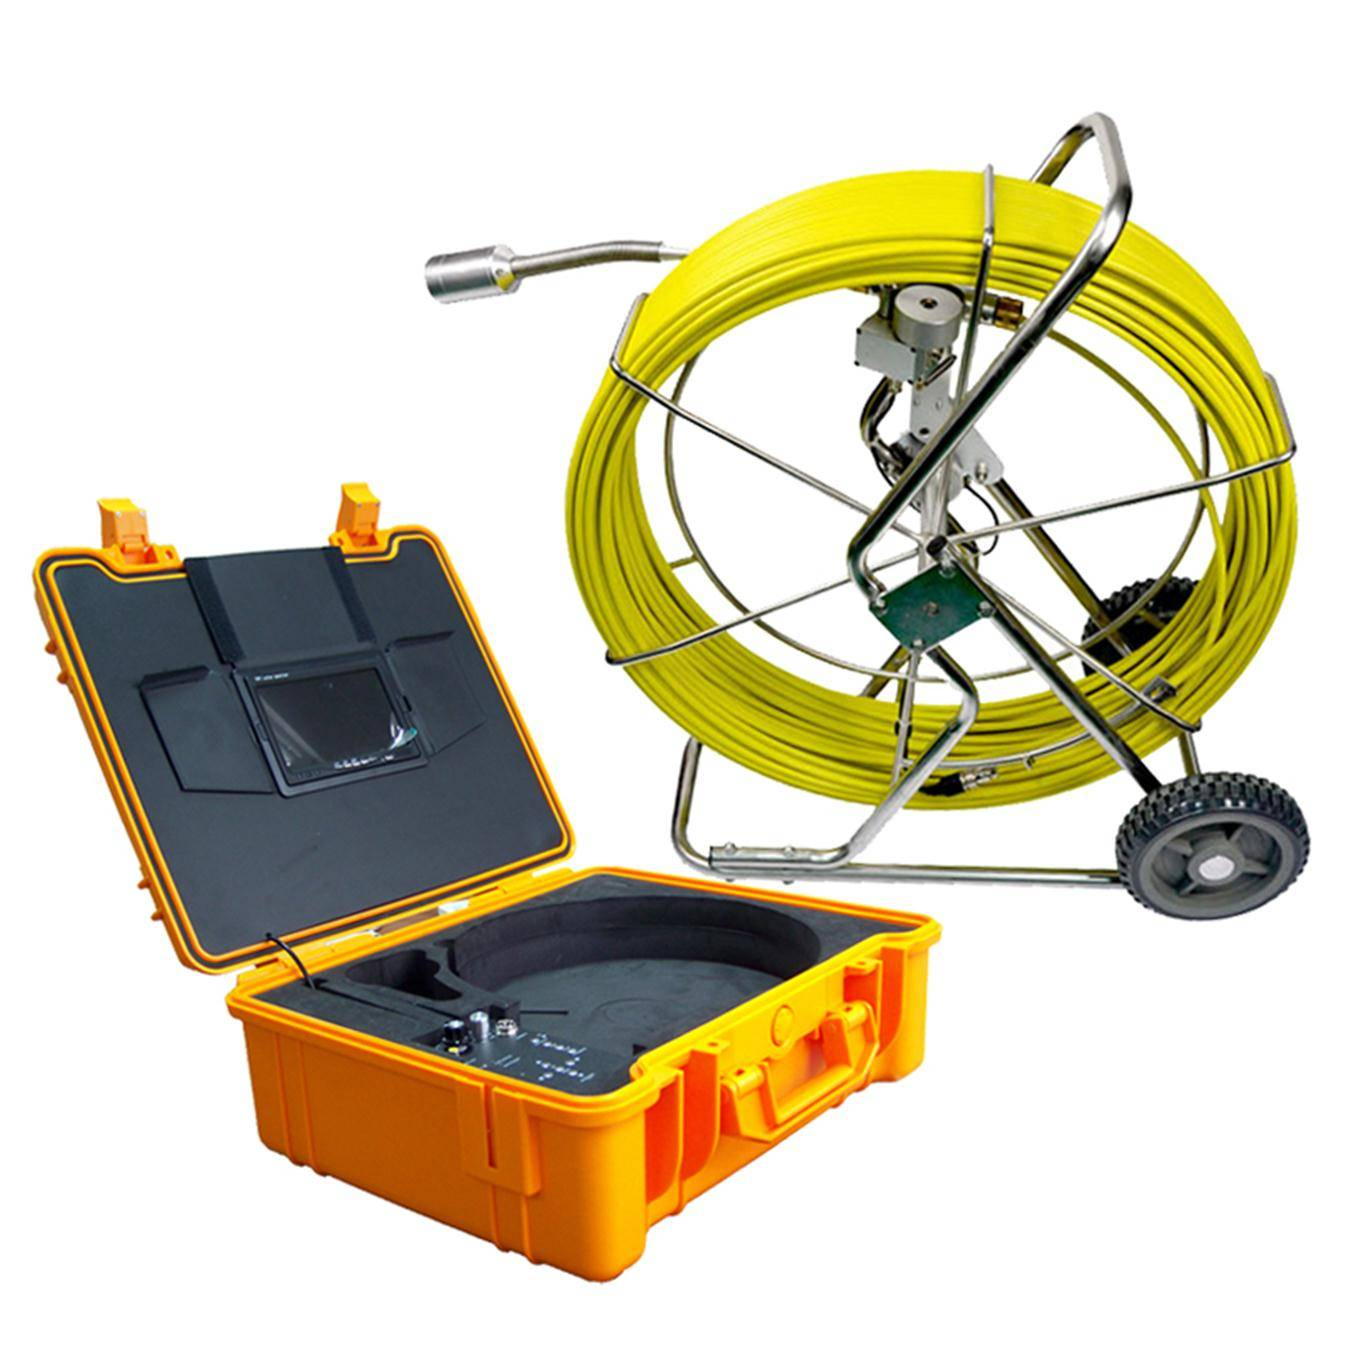 Pipe Drain sewer inspection camera